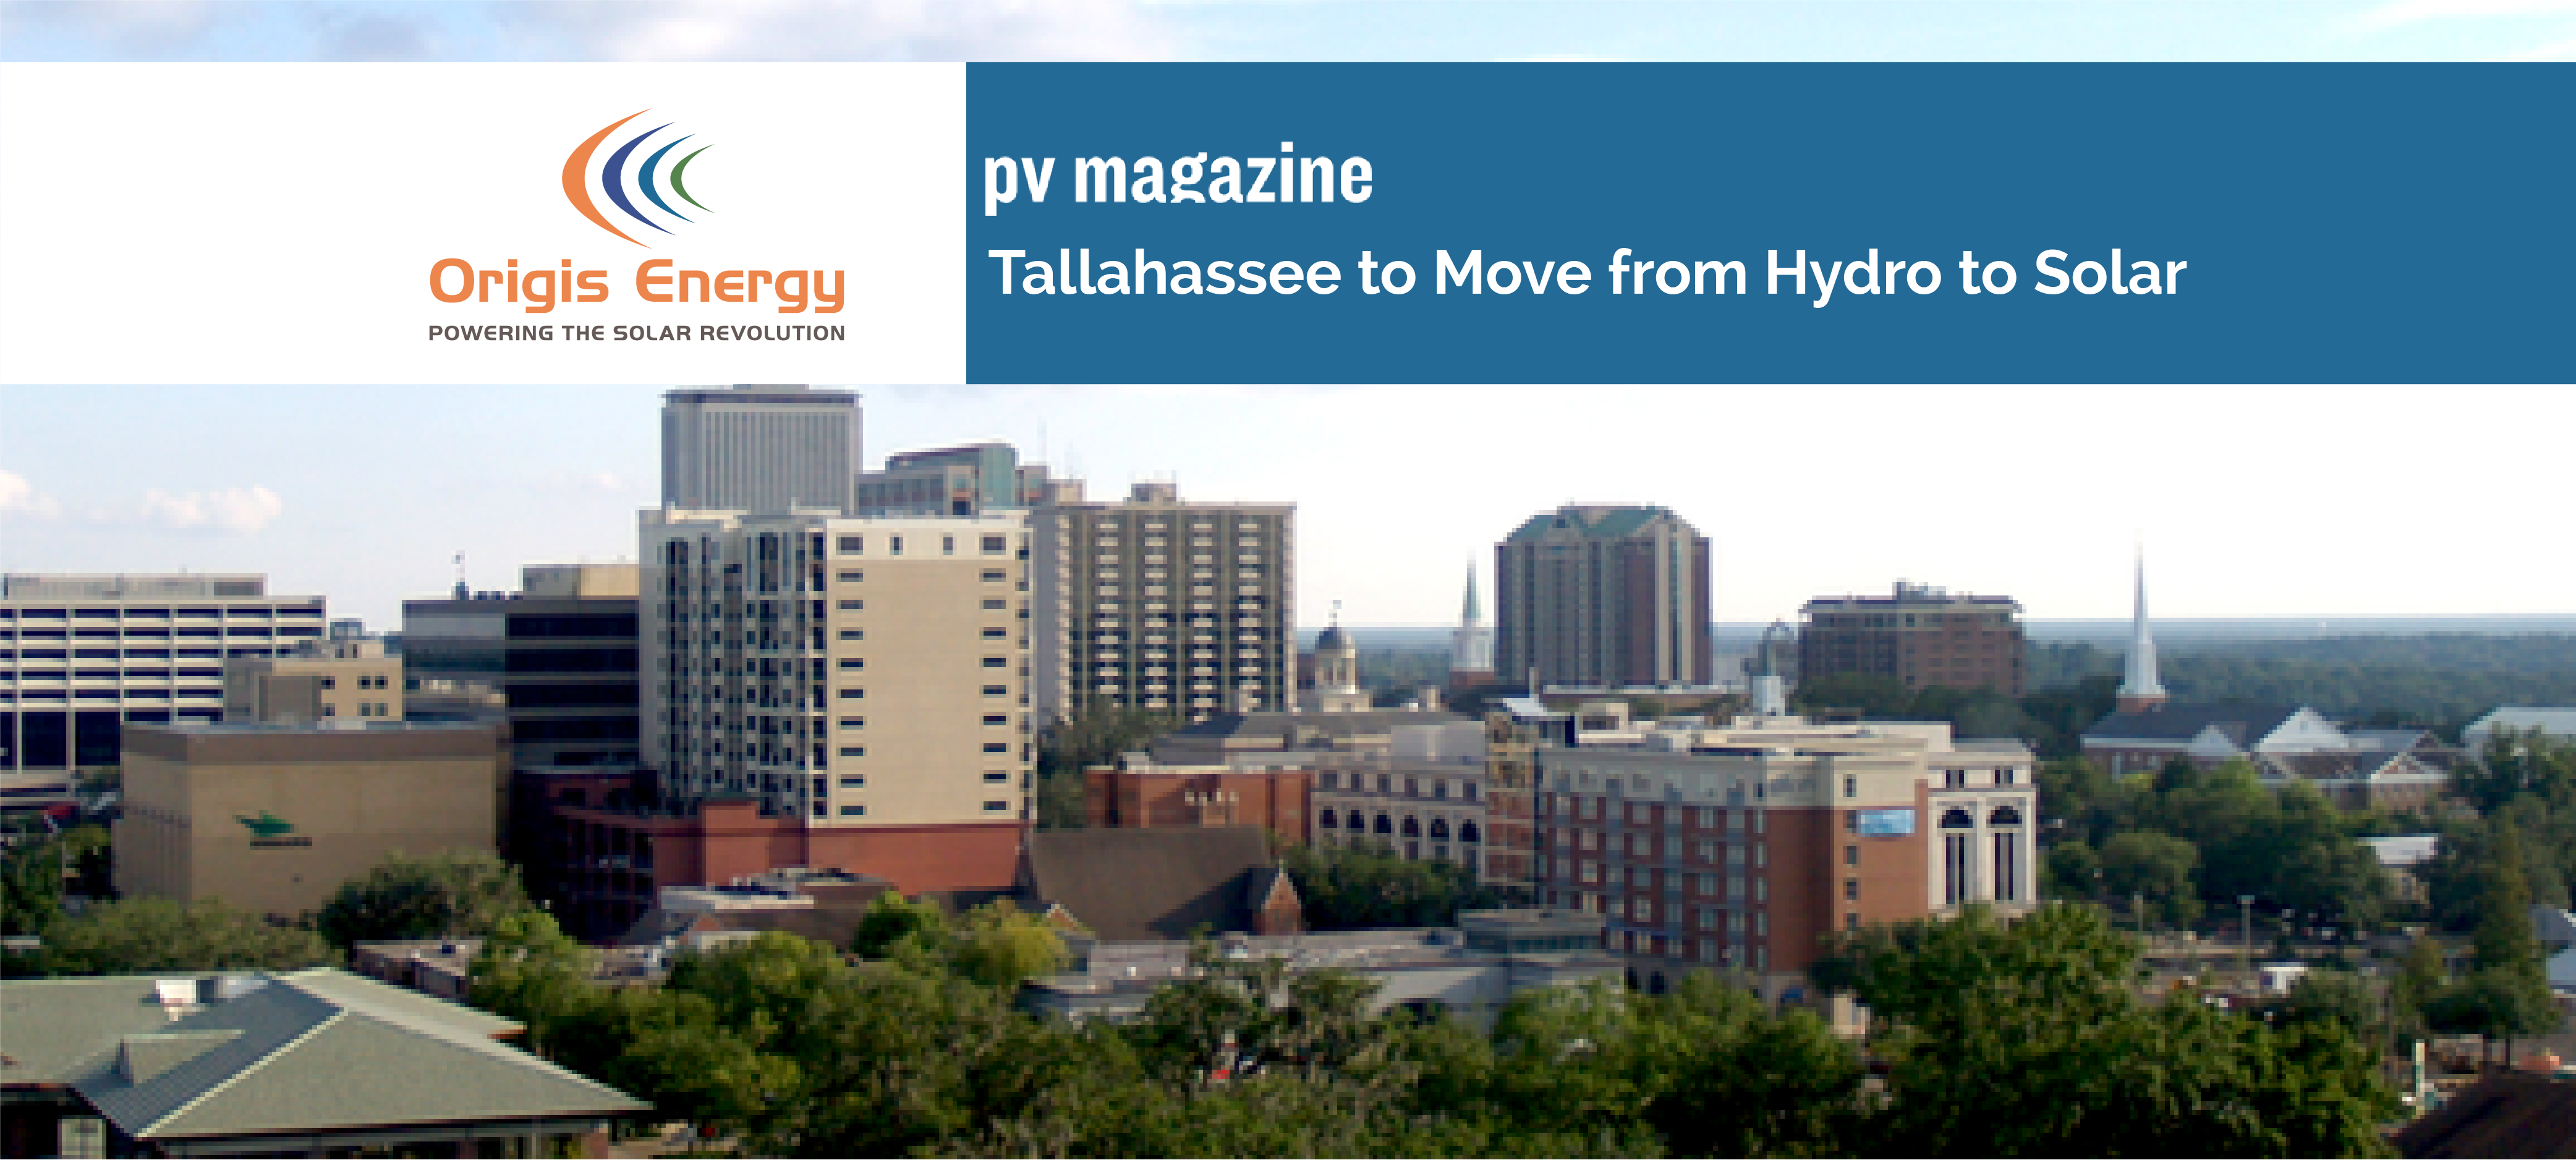 Tallahassee to Move from Hydro to Solar